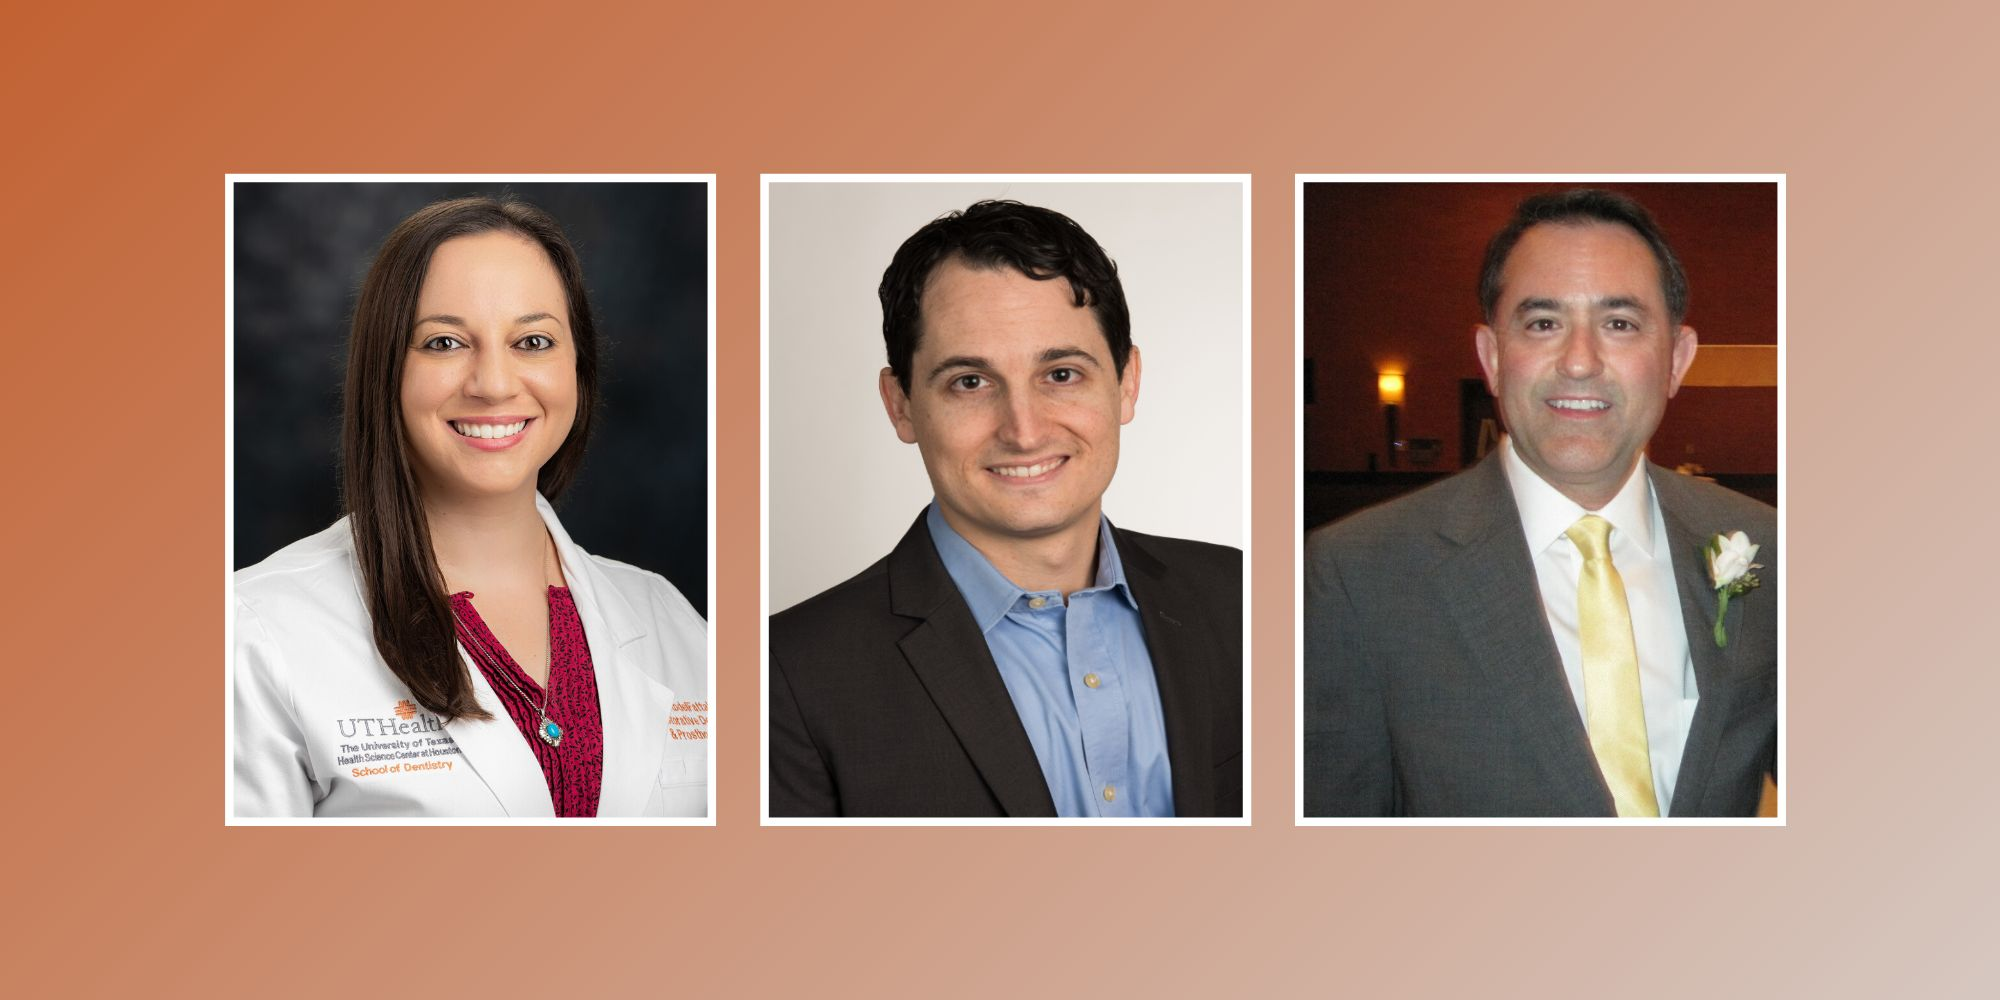 Photo of Magda R. AbdelFattah, DMD, MS, Aaron Glick, DDS, and Paul Levine, DDS on orange background